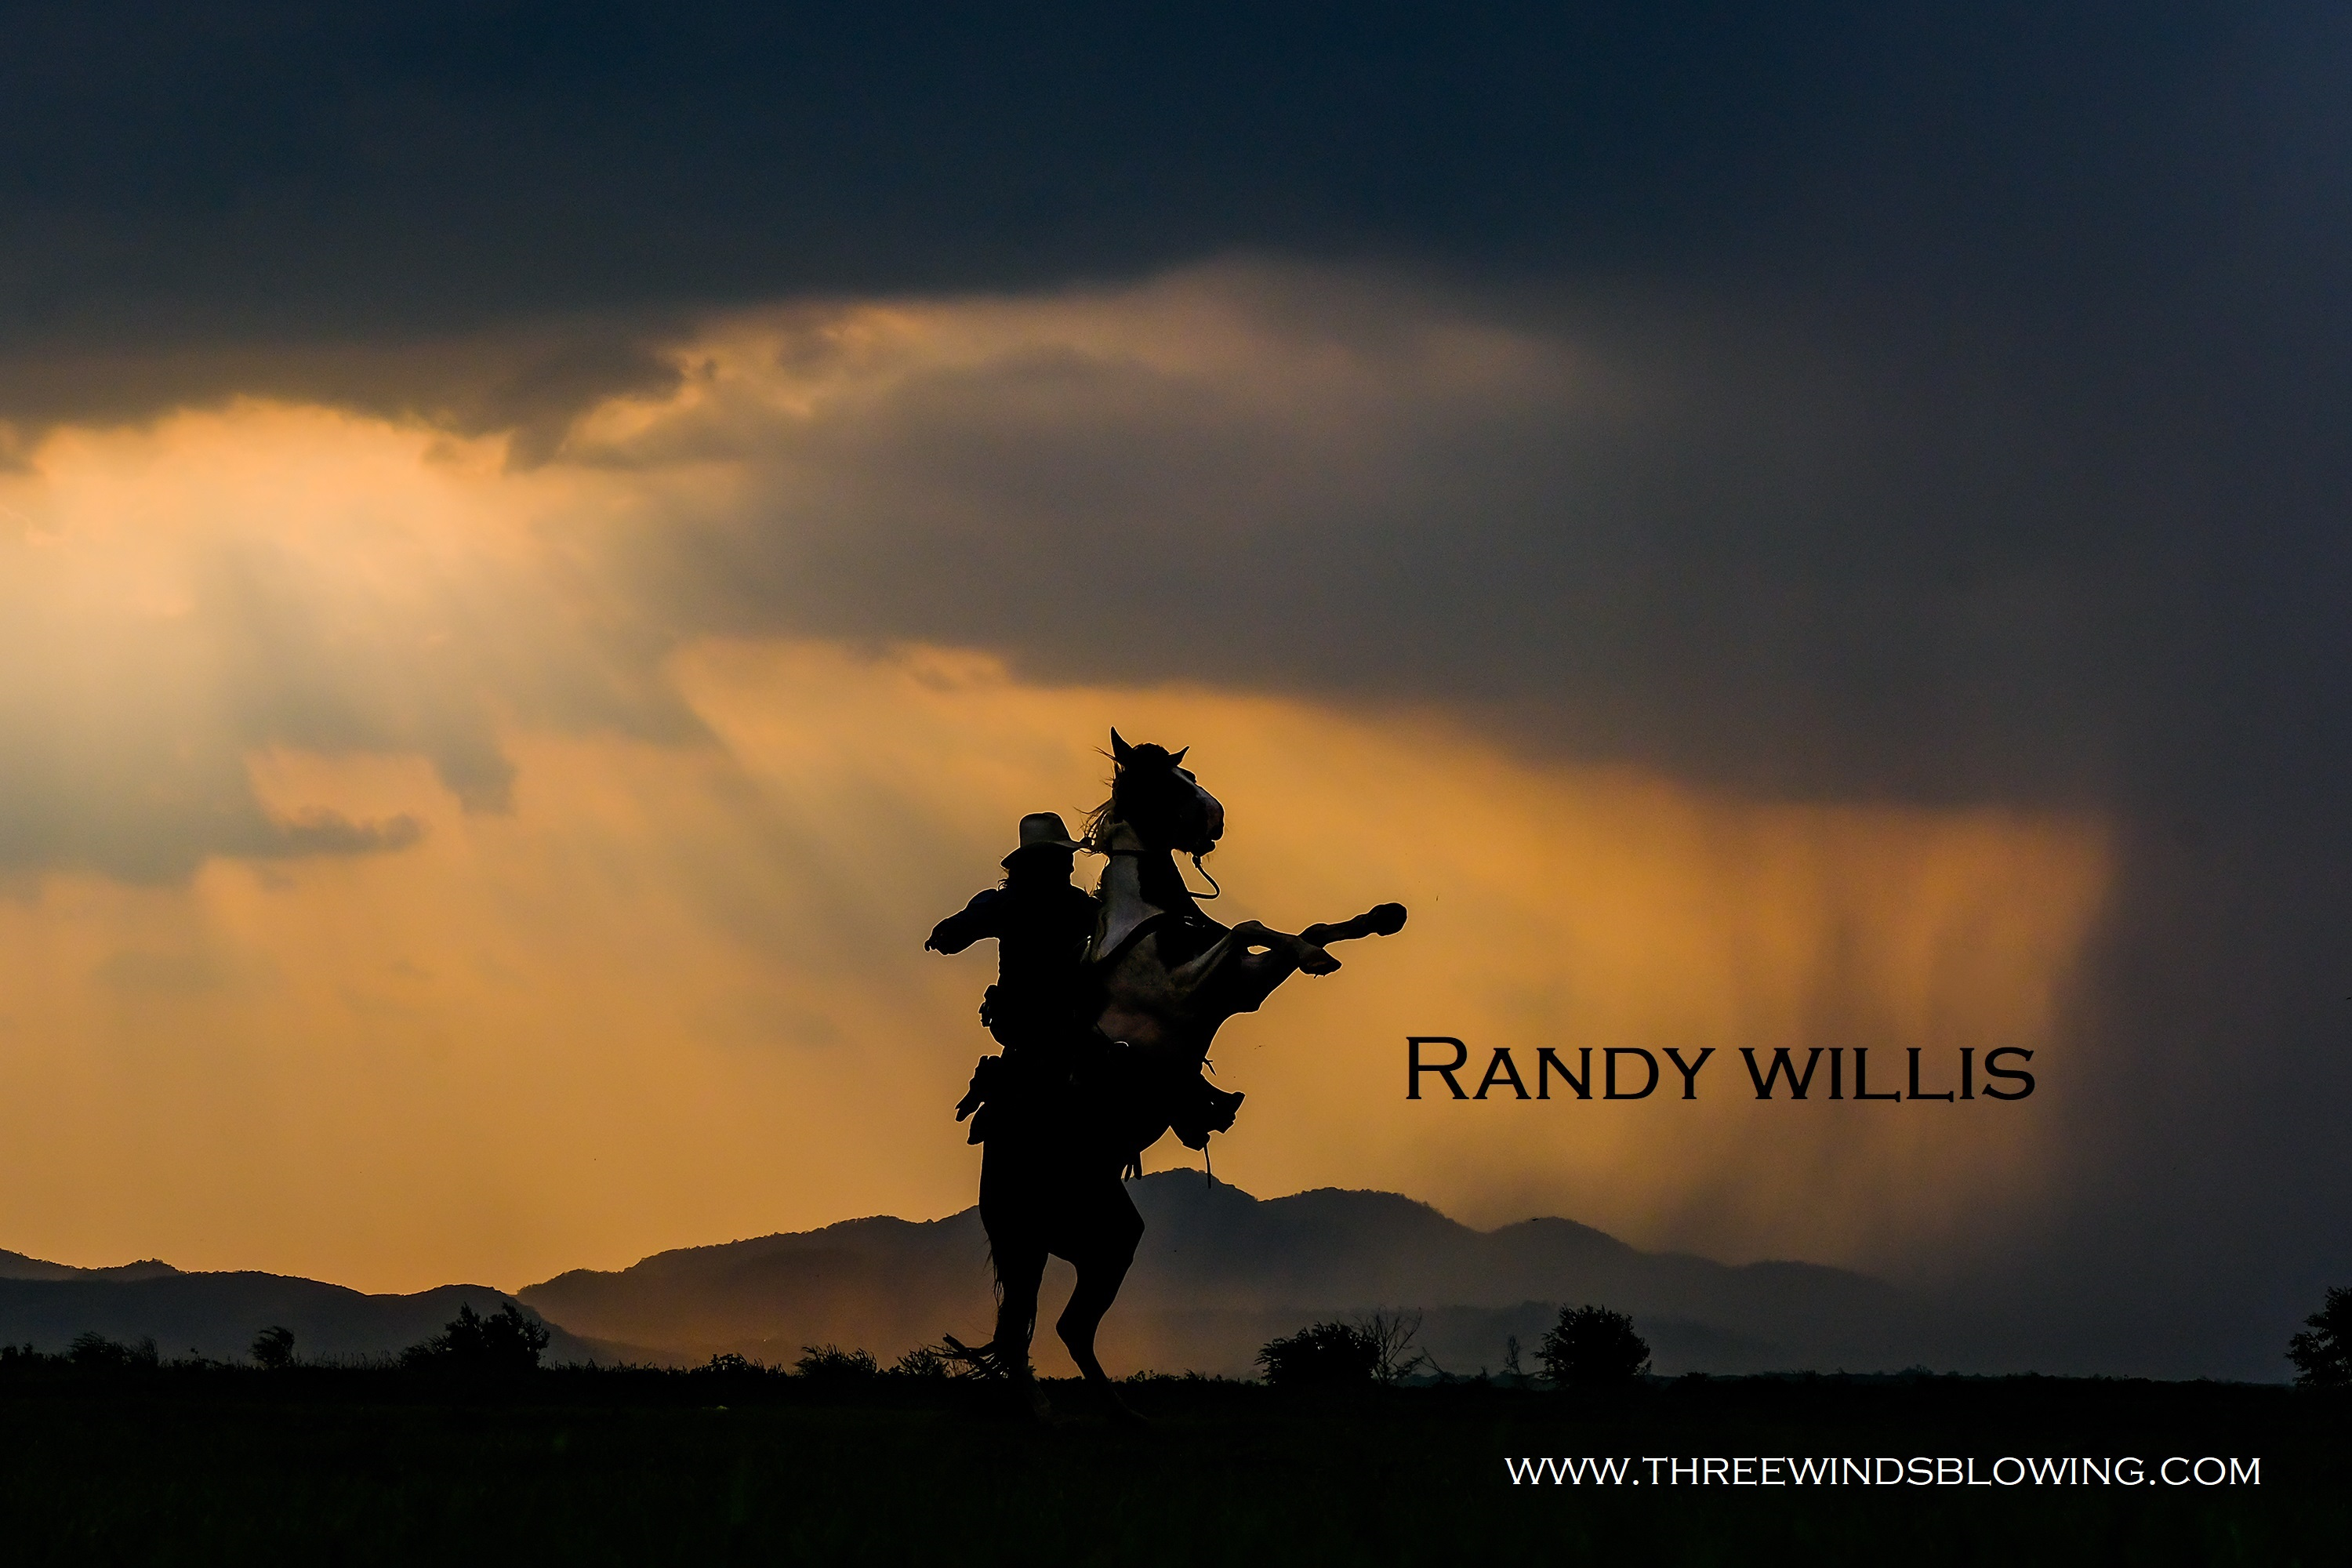 A man in a cowboy outfit with his horse